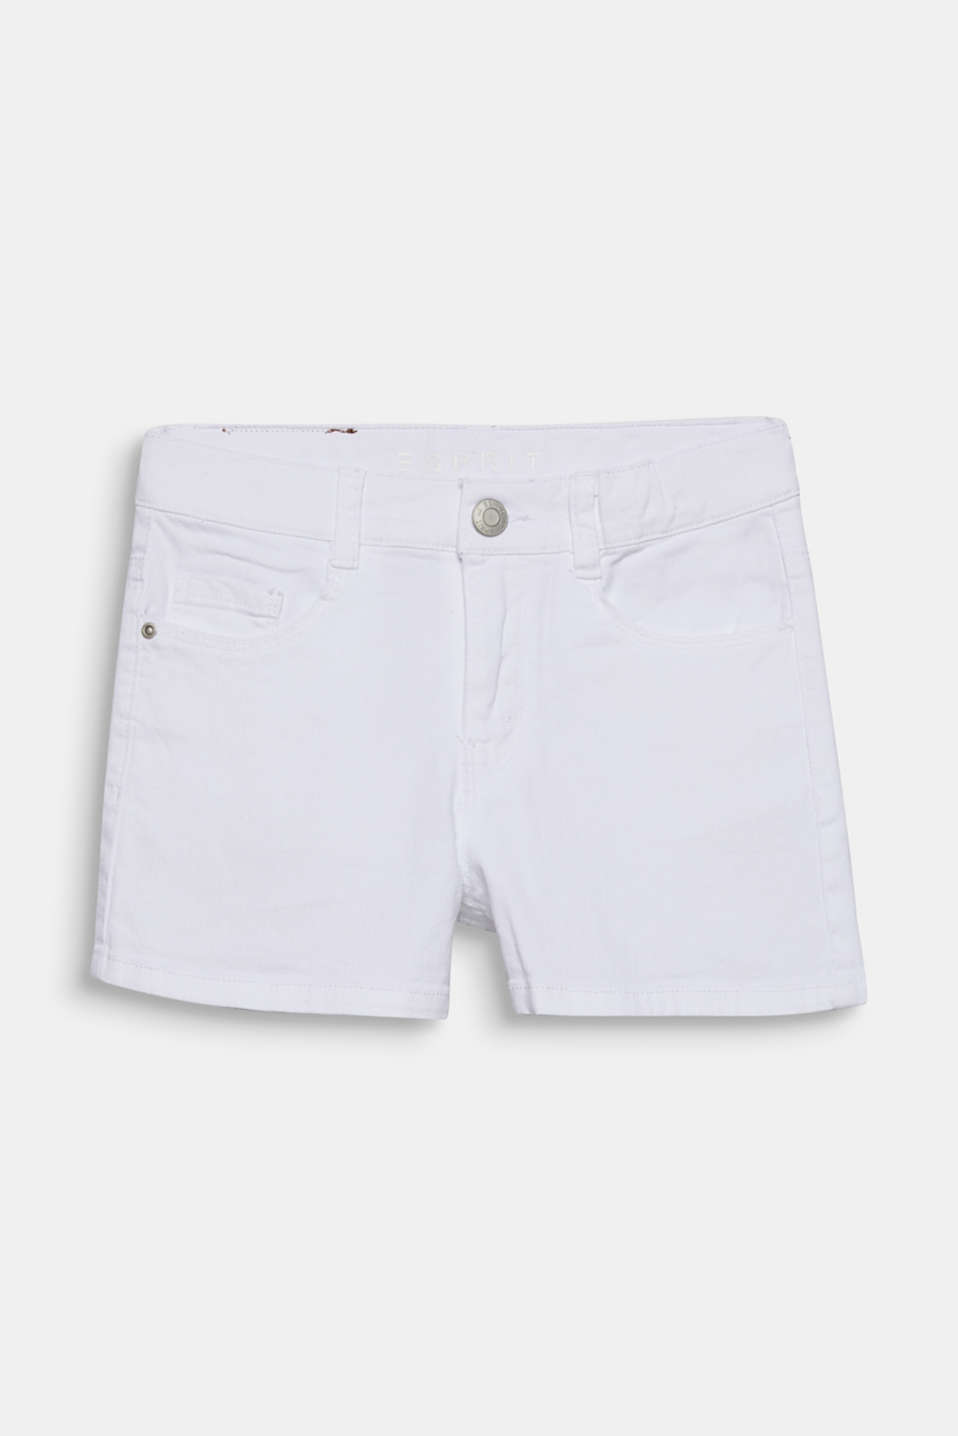 Esprit - Smalle denim short met stretch, verstelbare band